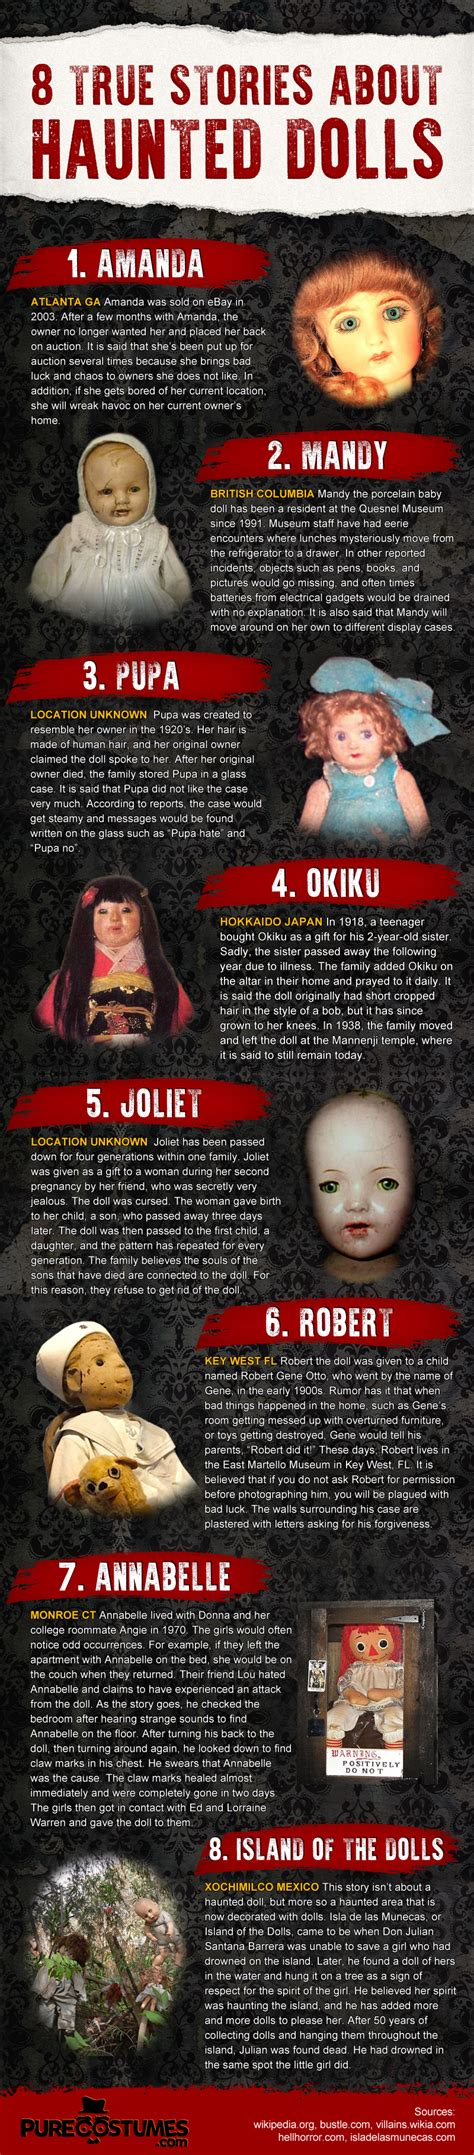 haunted doll stories true 8 true stories about haunted dolls costumes